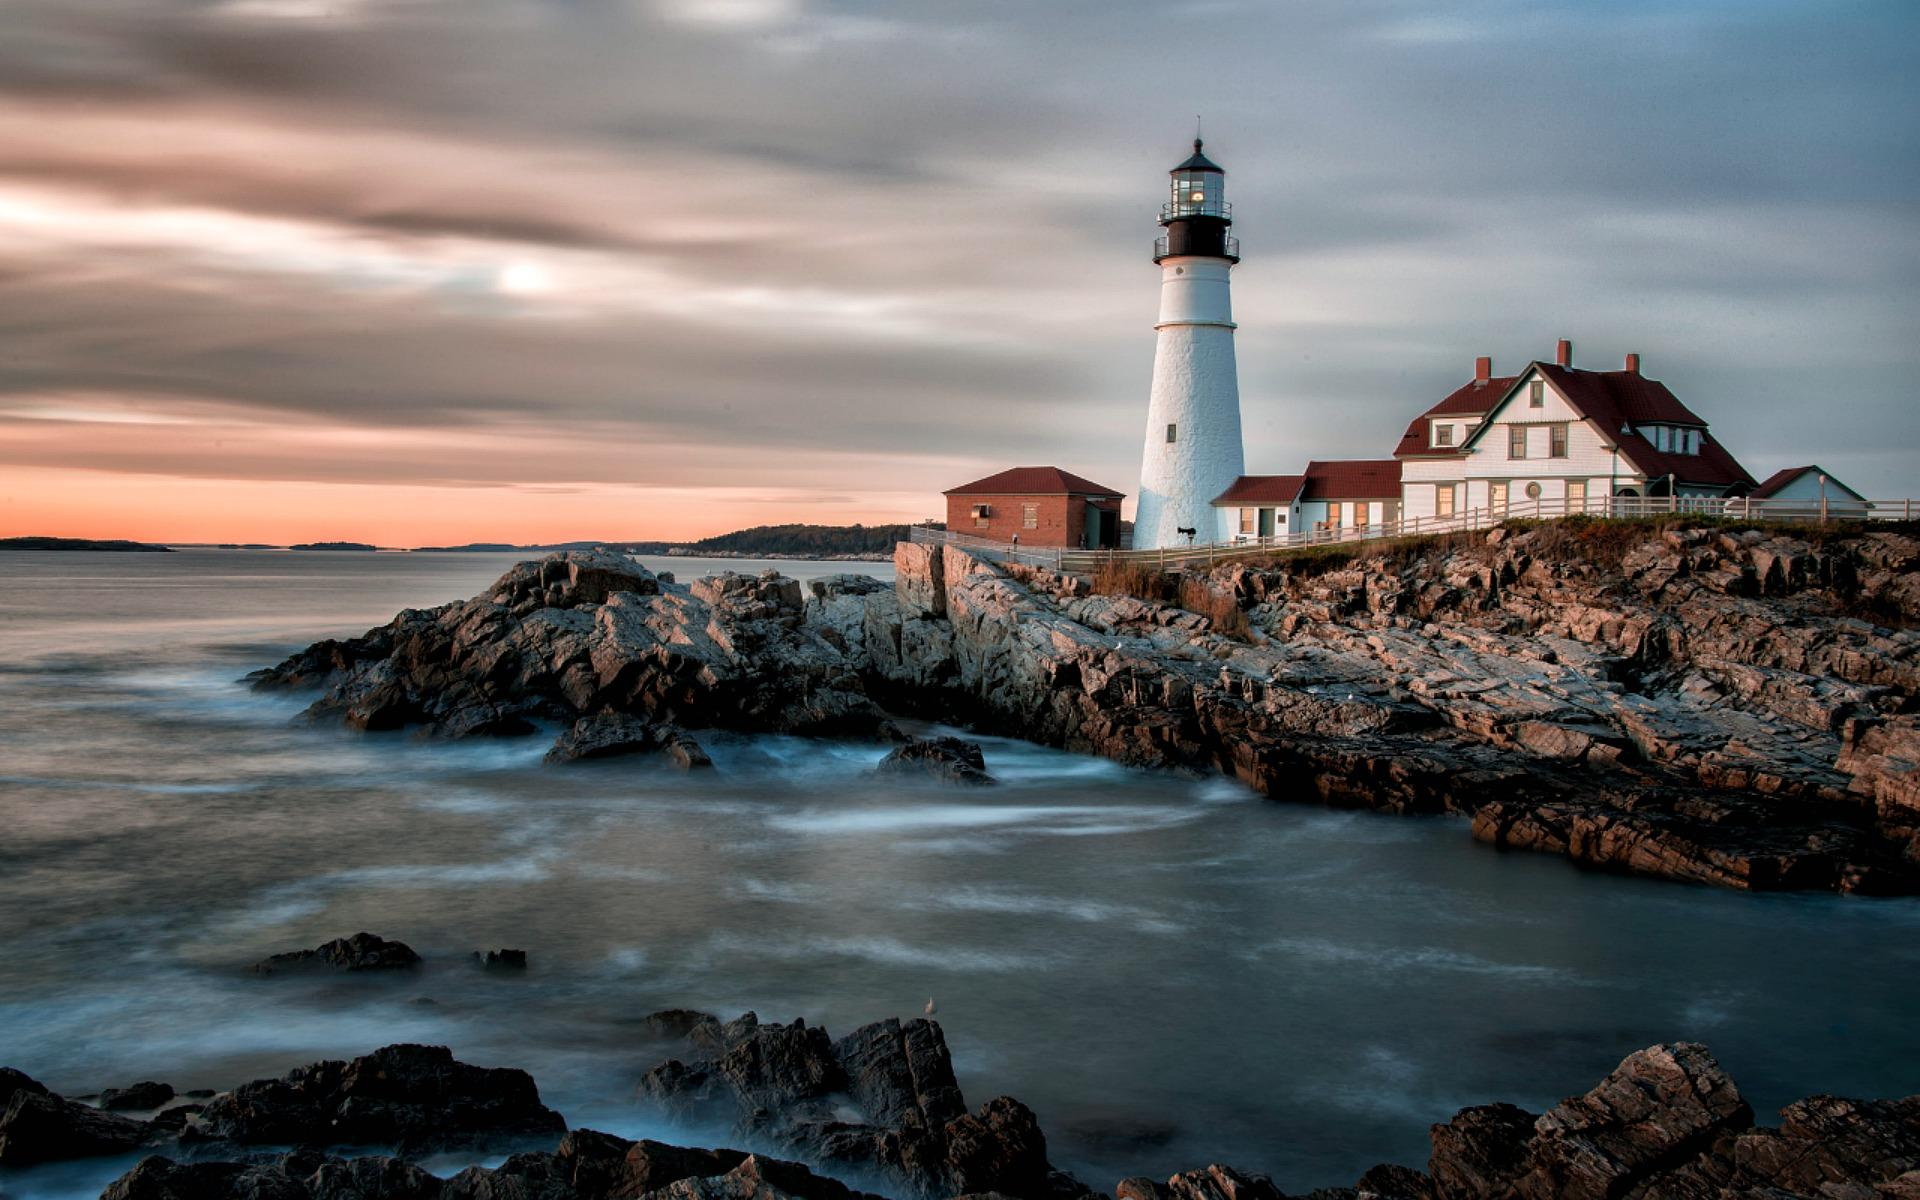 Free Download Lighthouse Wallpaper 1920x1200 For Your Desktop Images, Photos, Reviews